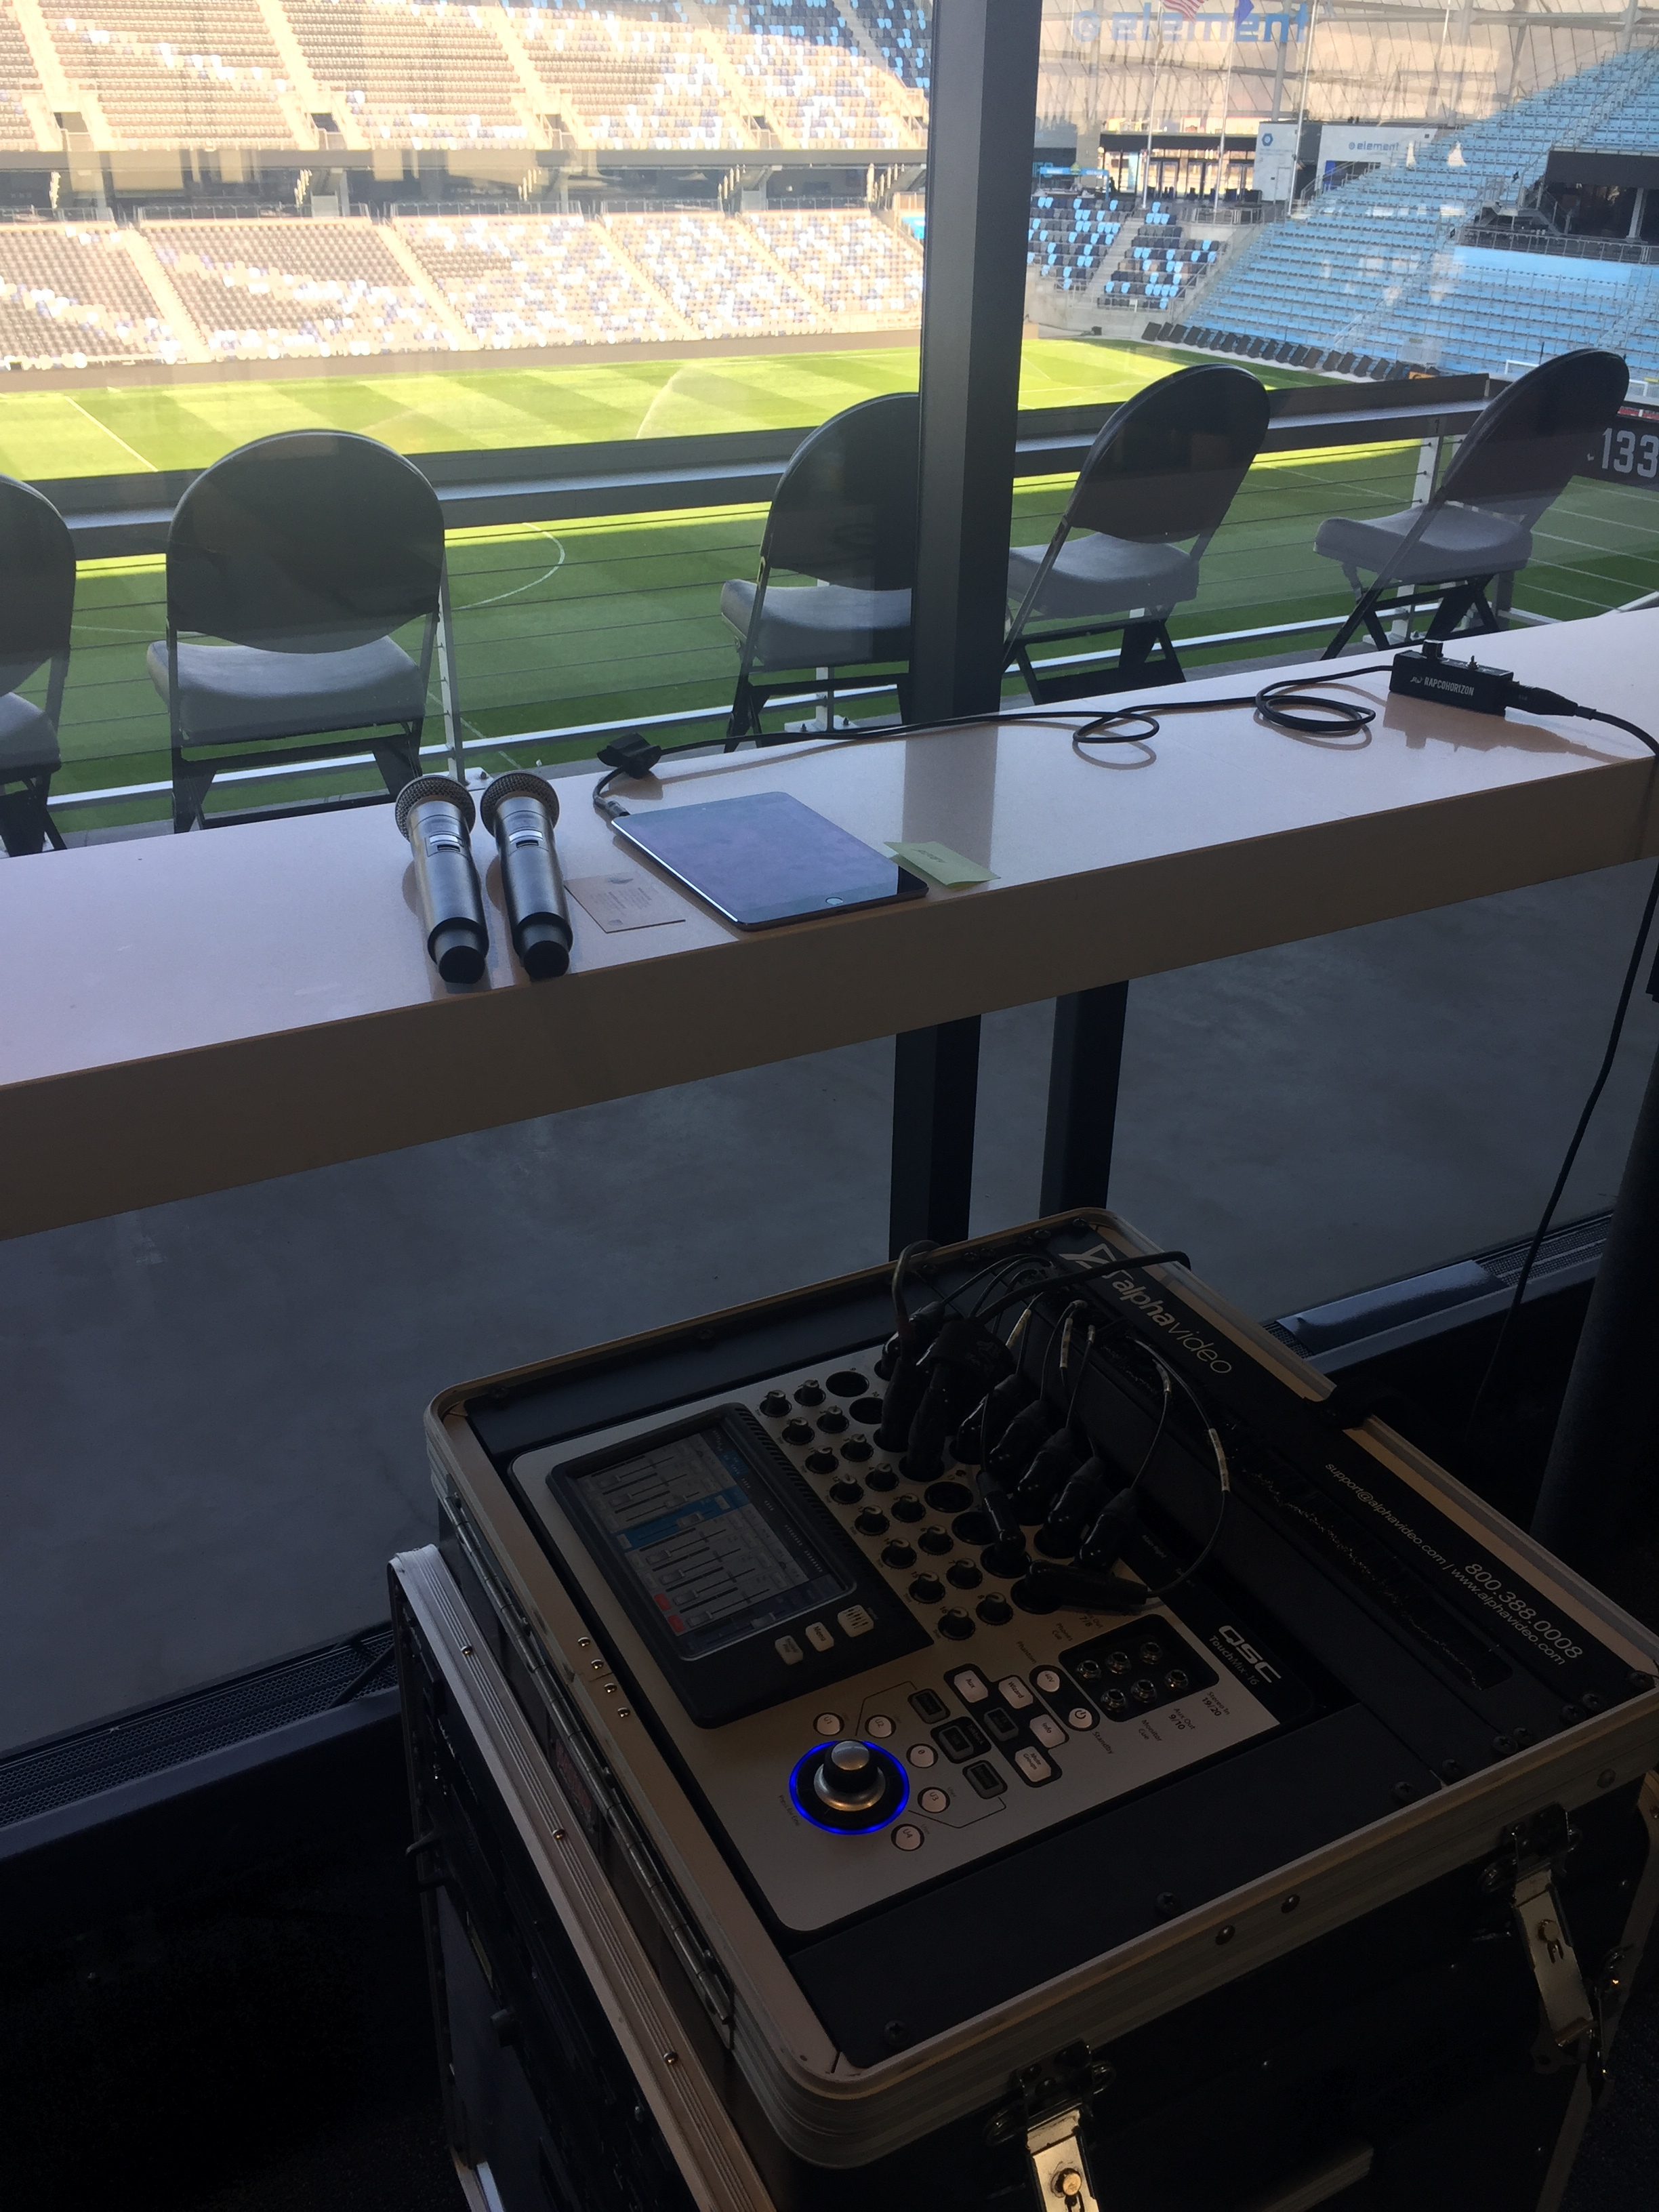 Picture of AV for You Microphone Rental for Stadium Club Event in Allianz Field